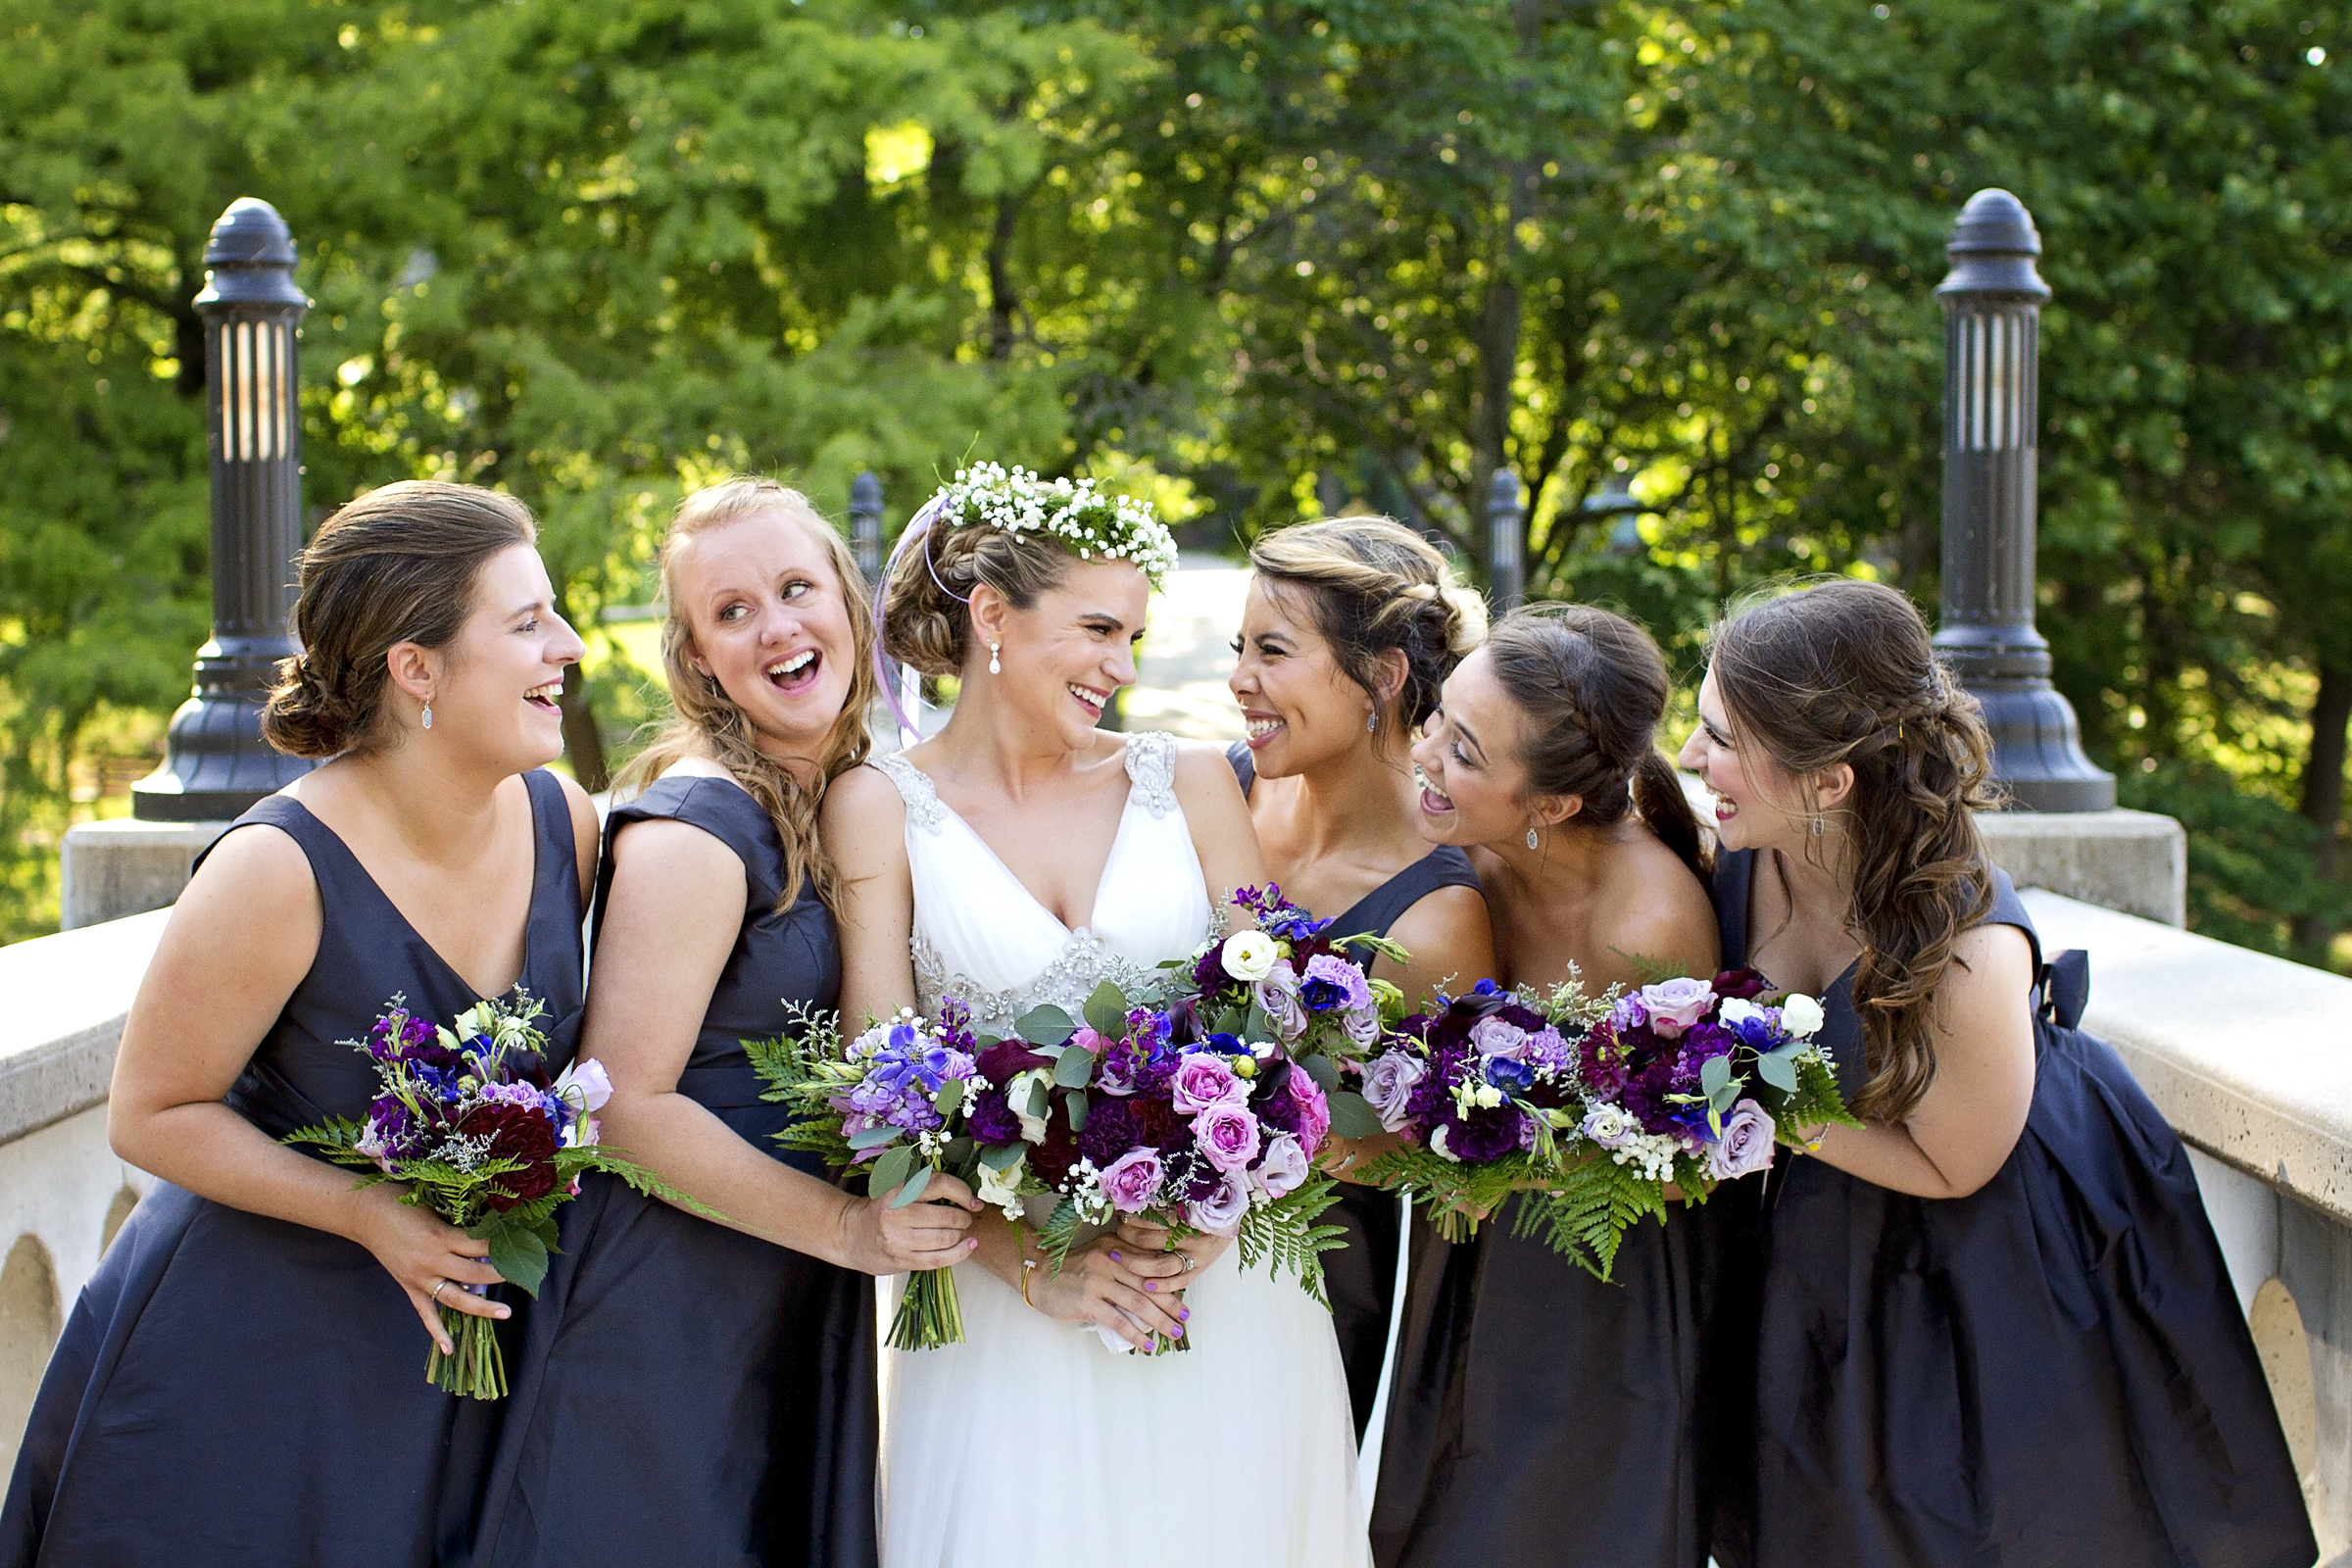 Summer purple bouquets and a baby's breath flower crown